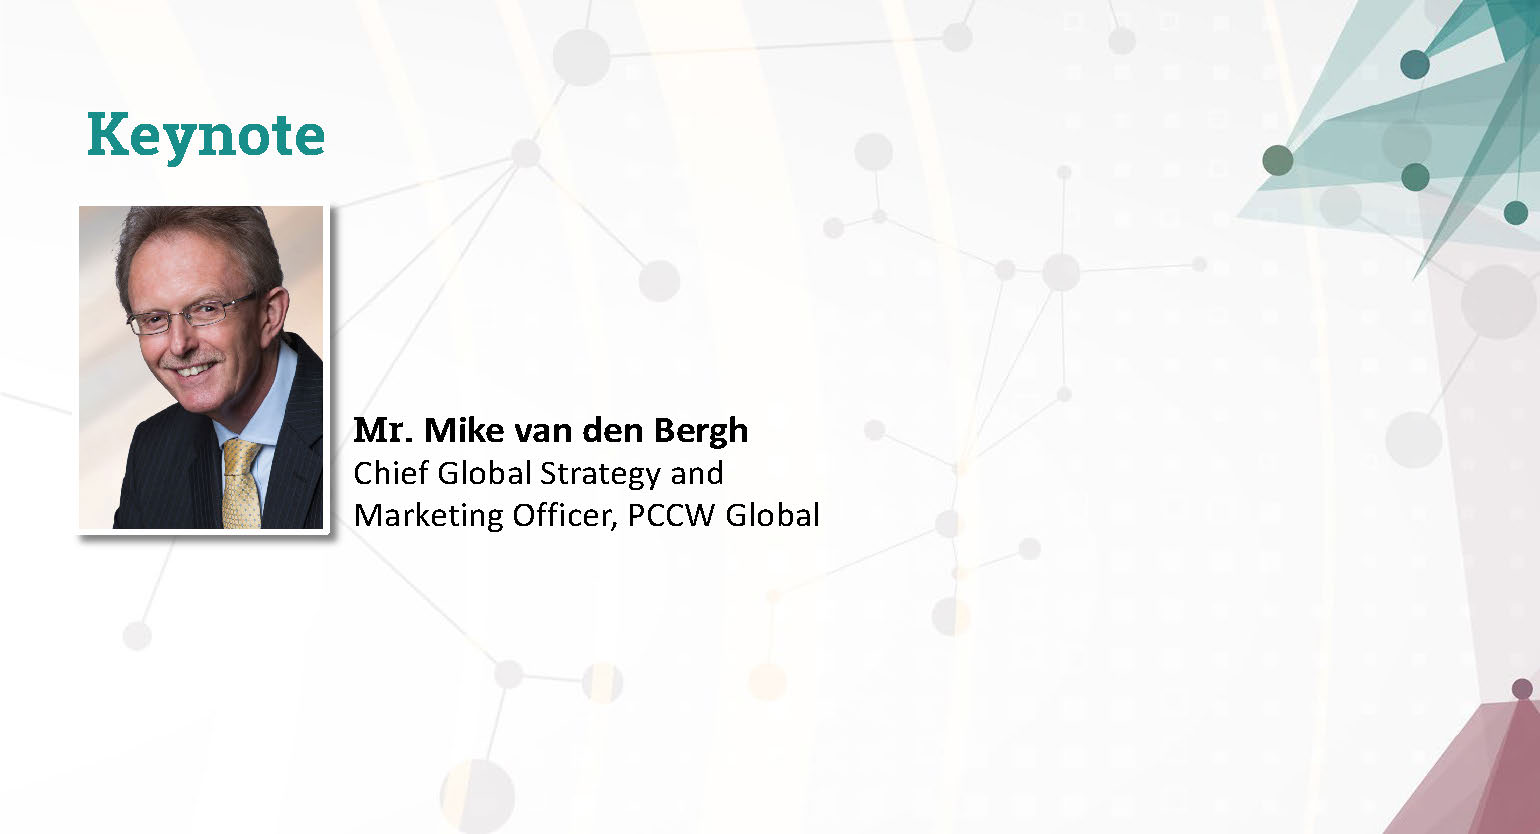 Keynote by Mr. Mike van den Bergh, the Chief Global Strategy and Marketing Officer, PCCW Global